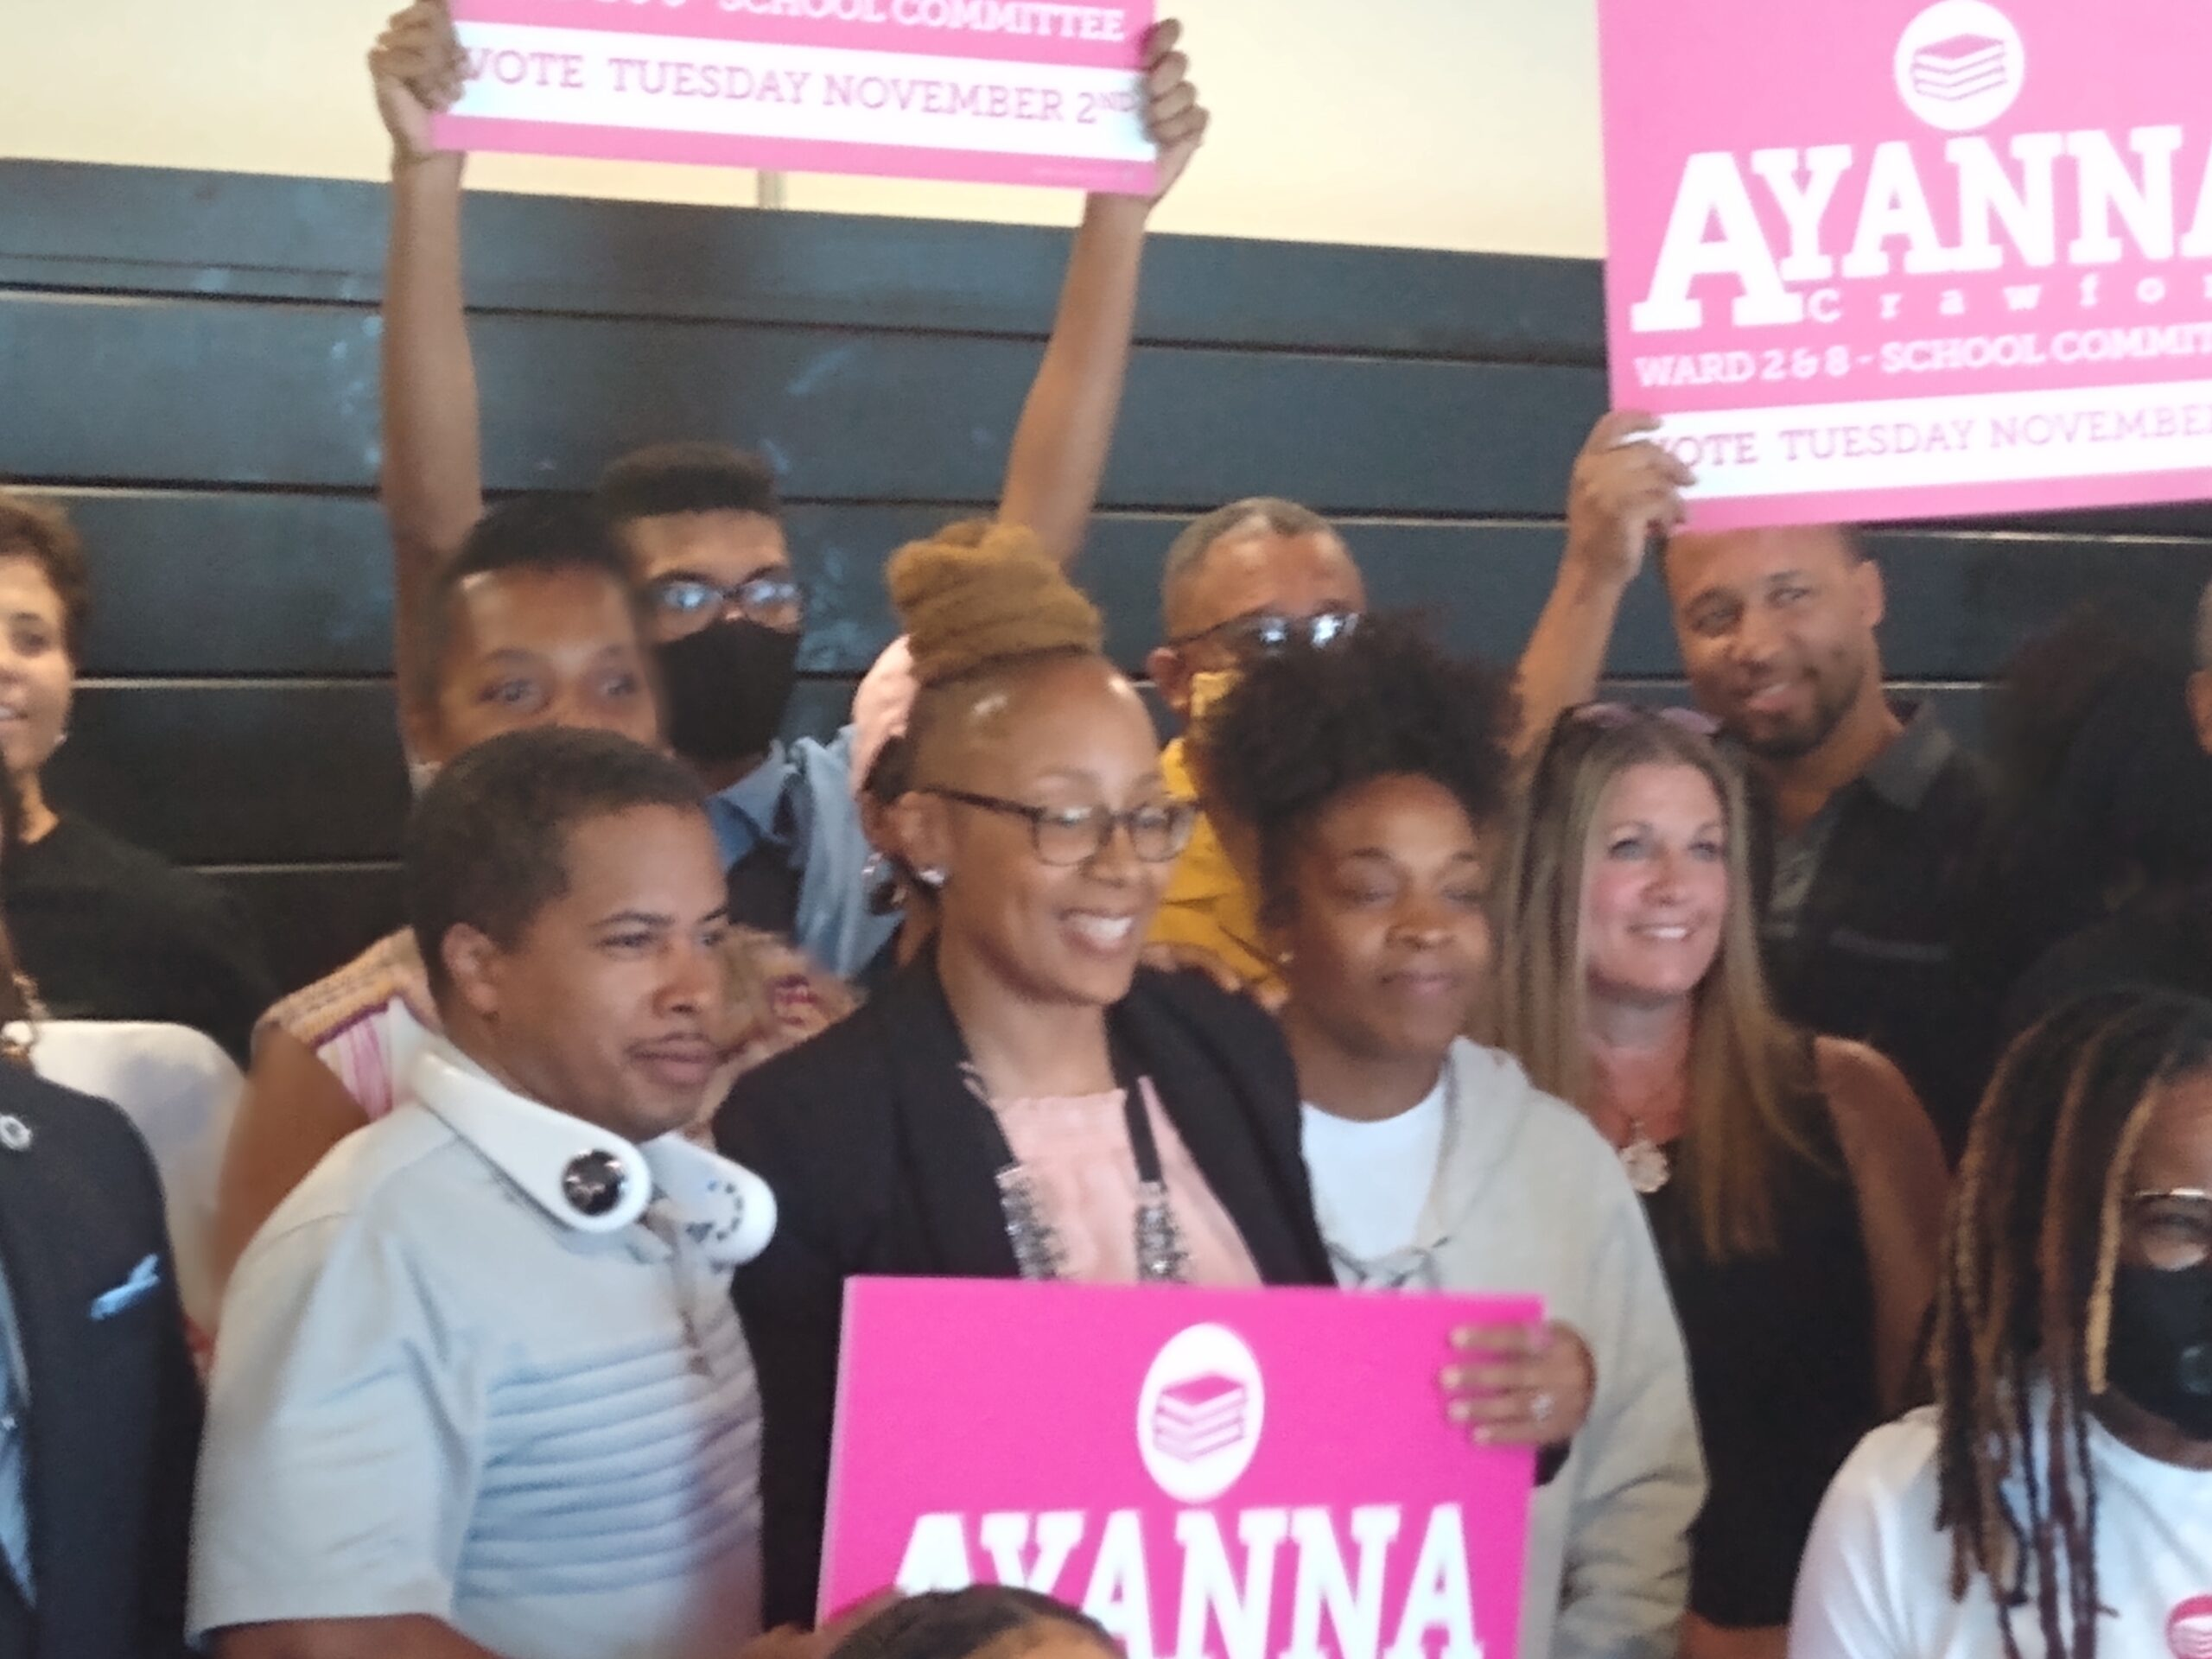 Ayanna Crawford and supporters